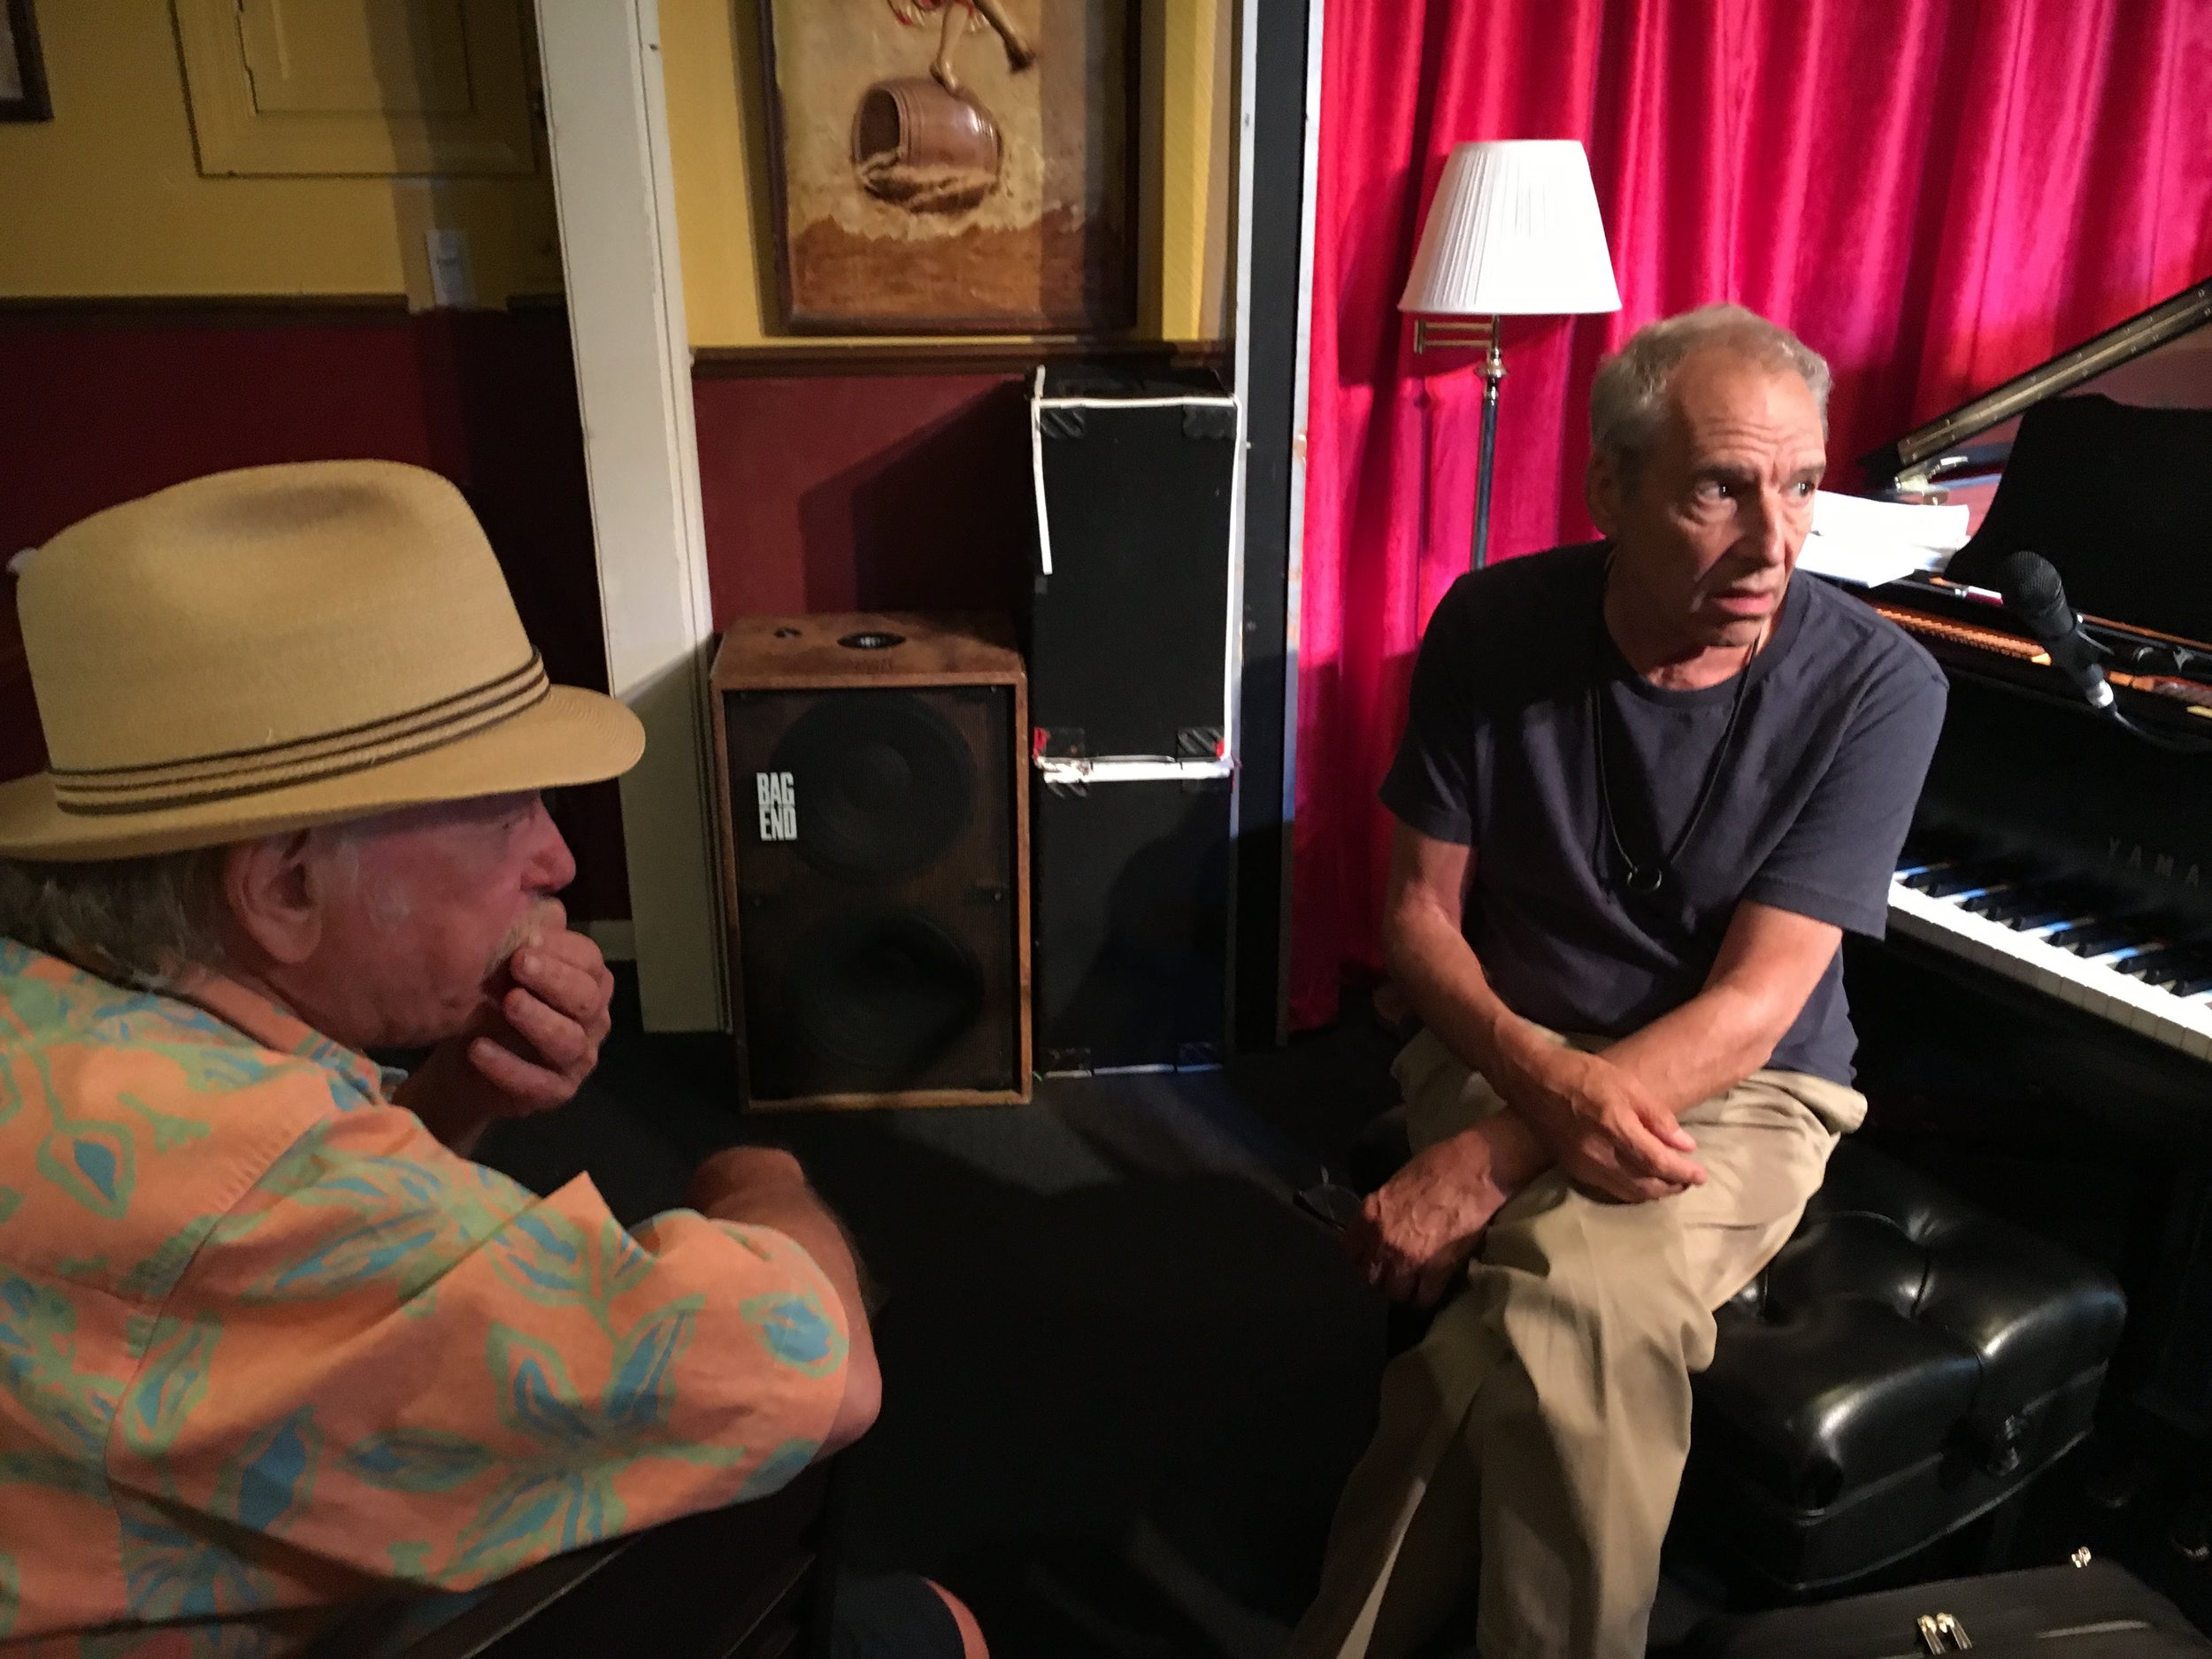 Richie Cole and Ben Sidran - old friends catching up at Nighttown in Cleveland